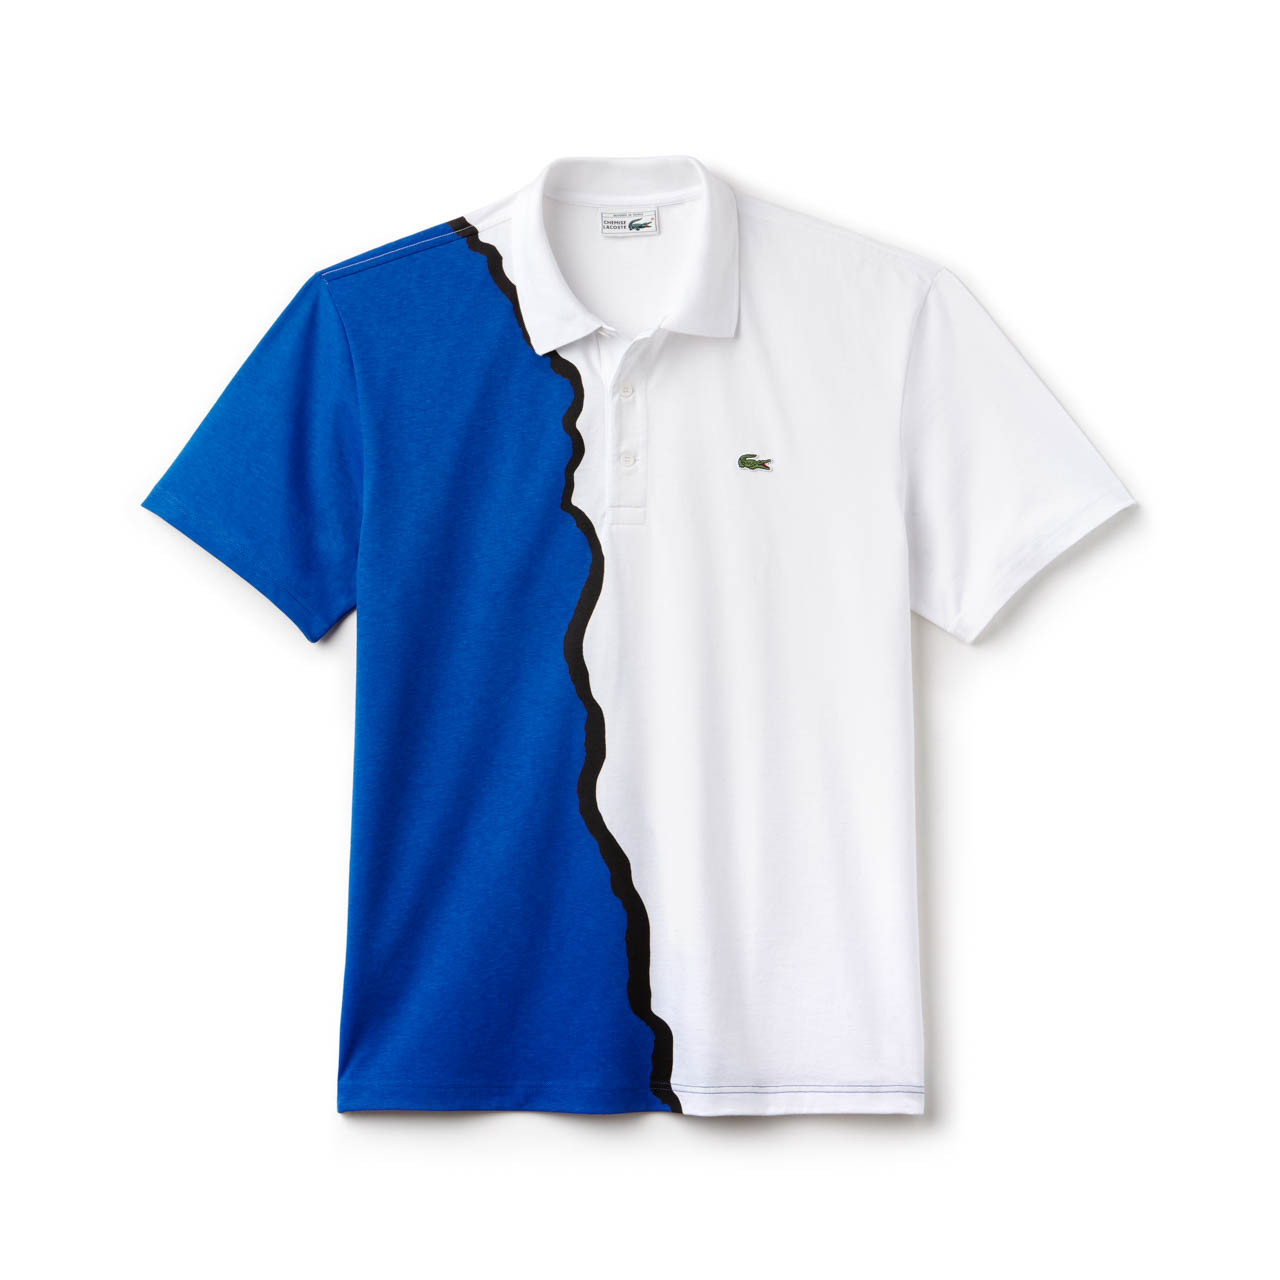 20170912-90s_LACOSTE_SS18_DH7342